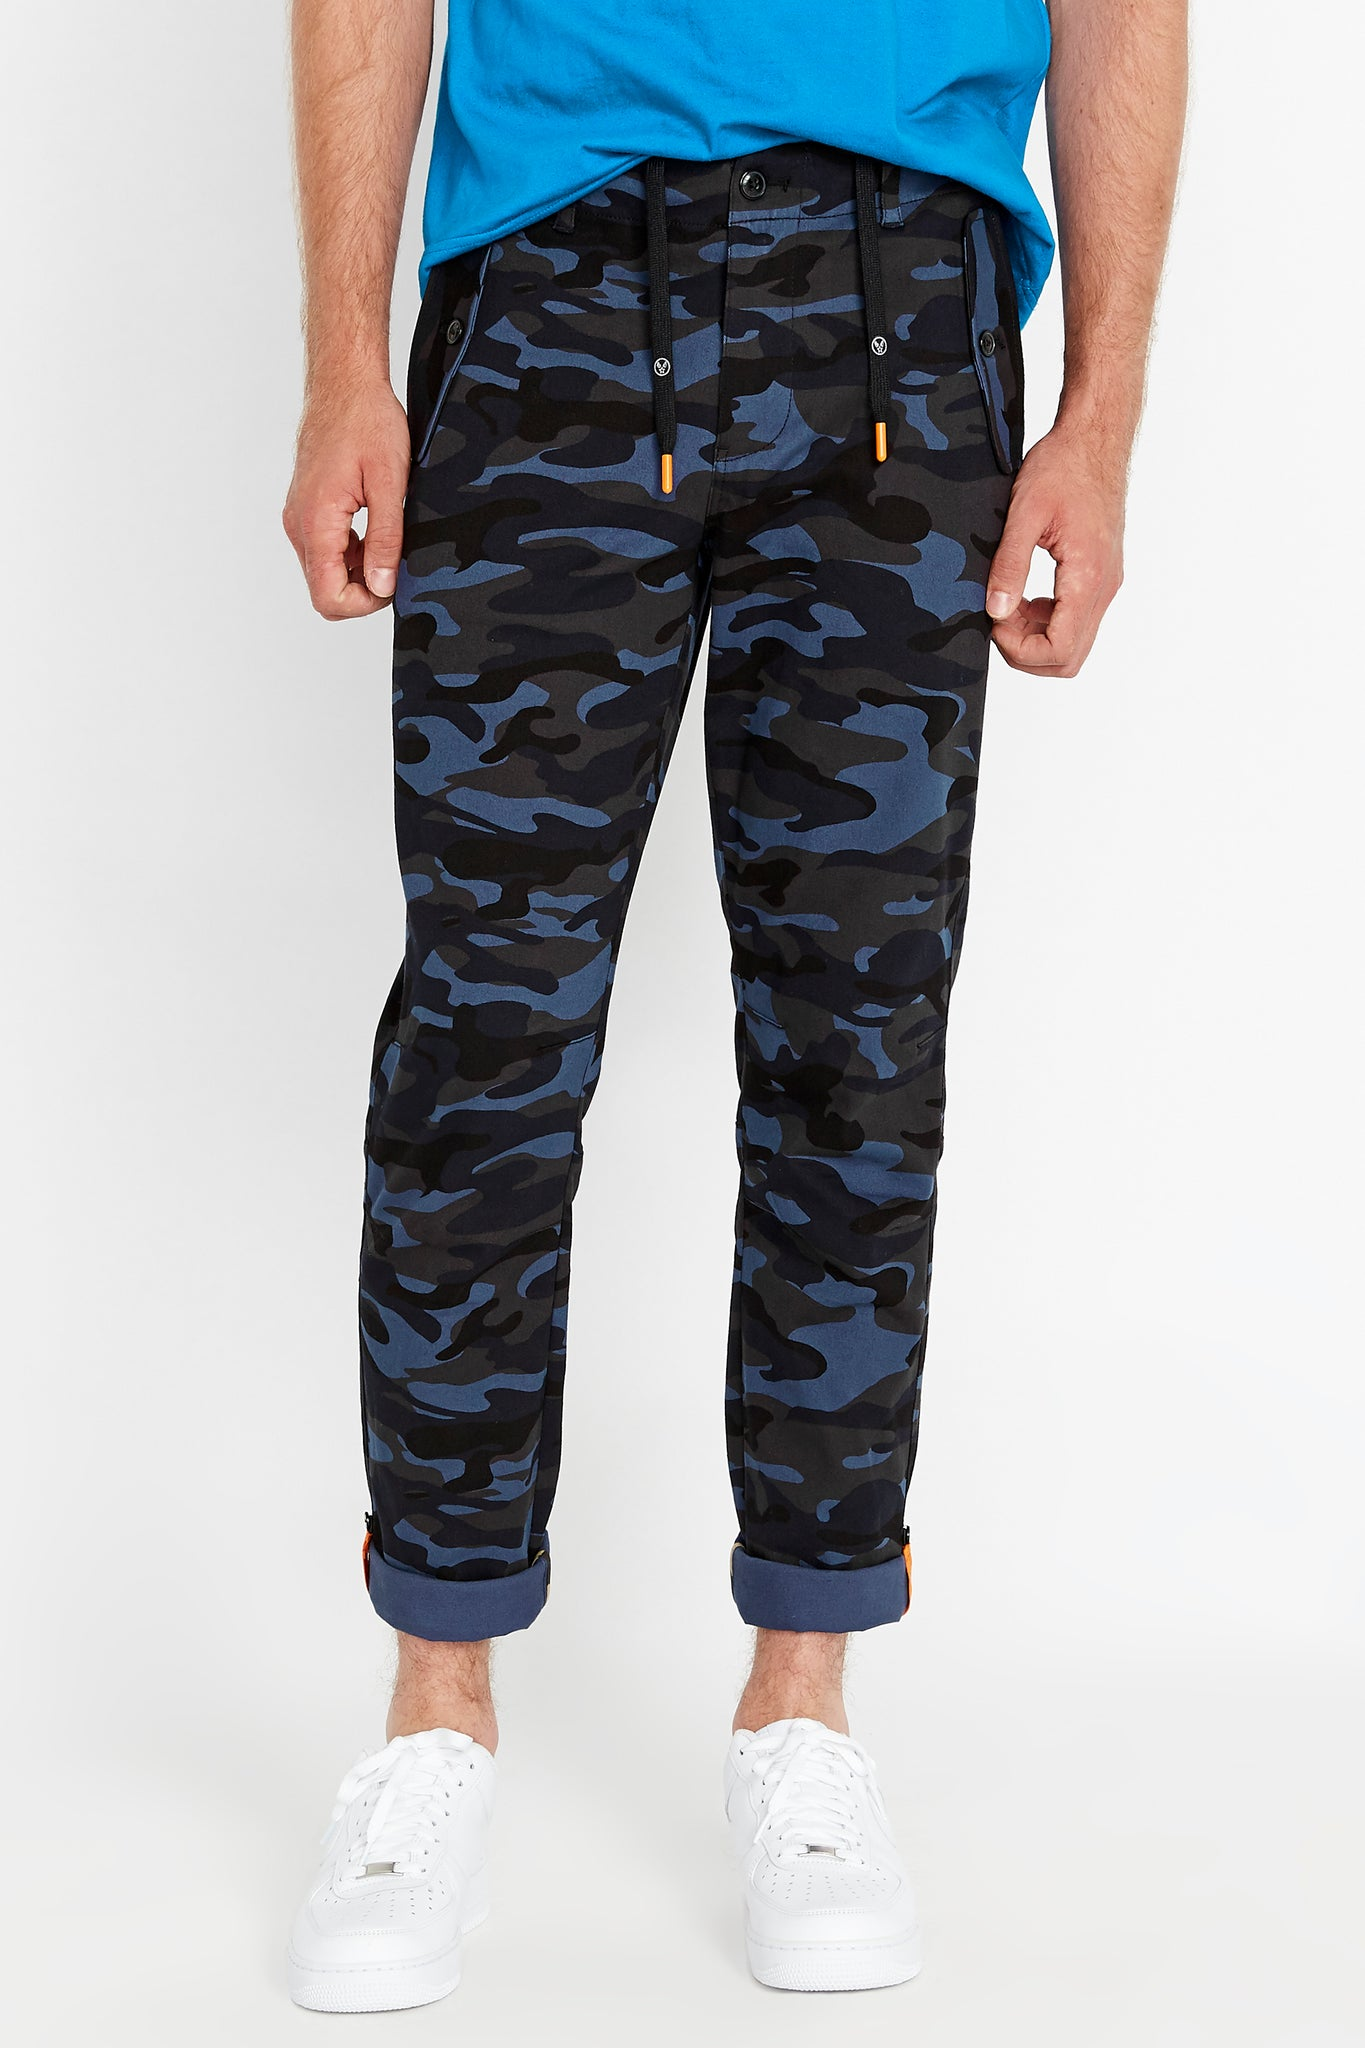 Front view of navy camo print pants with branded draw cords and two pockets on the side and bottom hem rolled with reflective logo